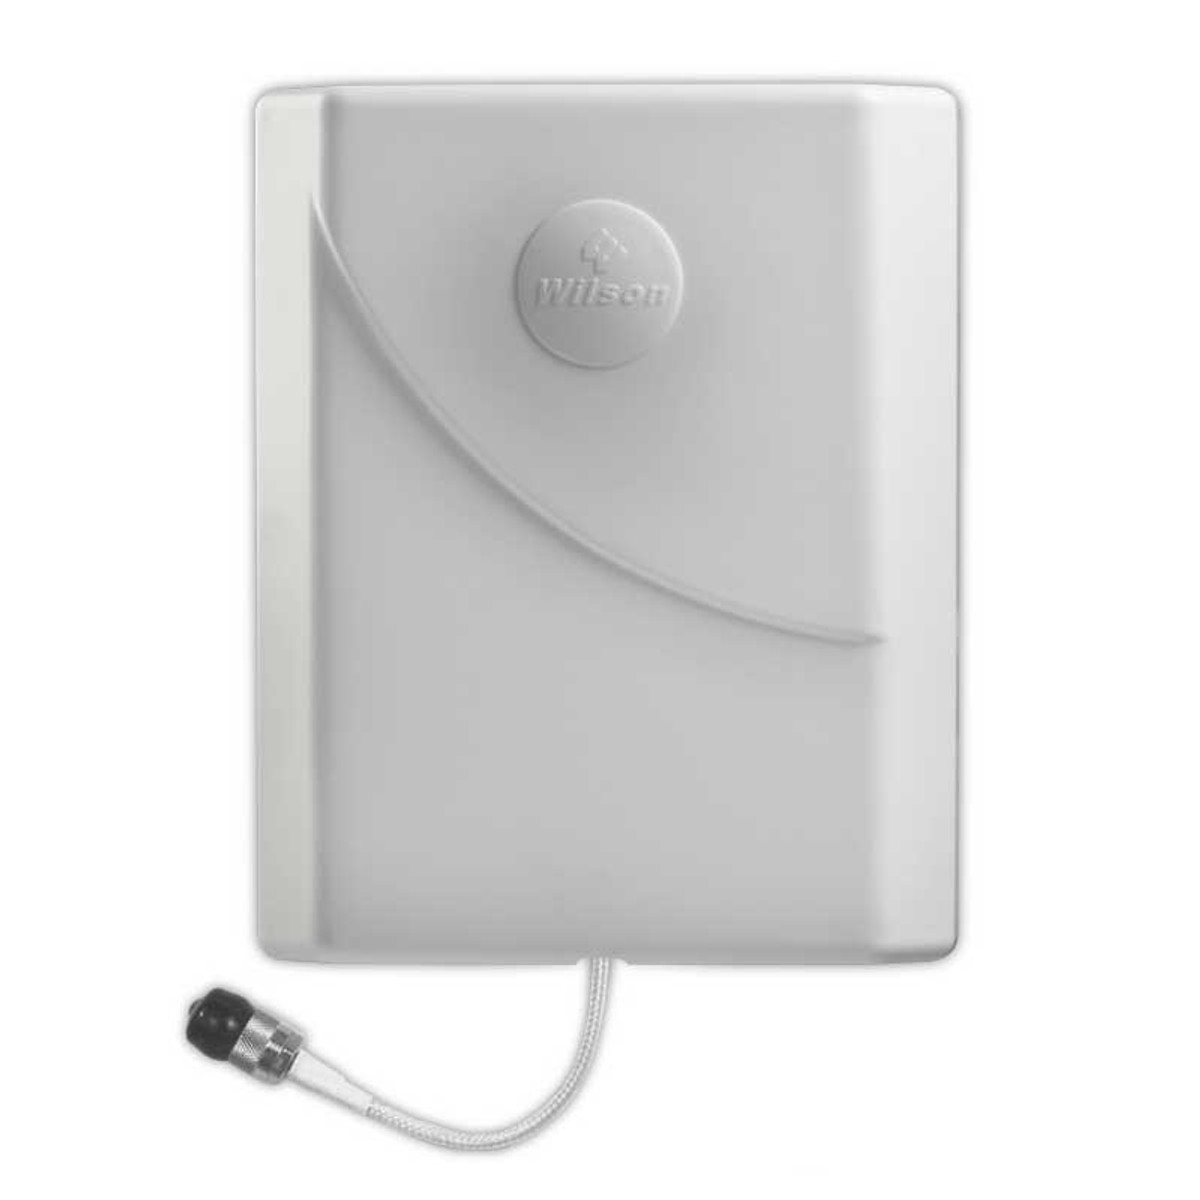 Wilson 304472 Suction-Cut Outside-facing Window Mount Panel Antenna 75 ohms Multi Band, magnified view